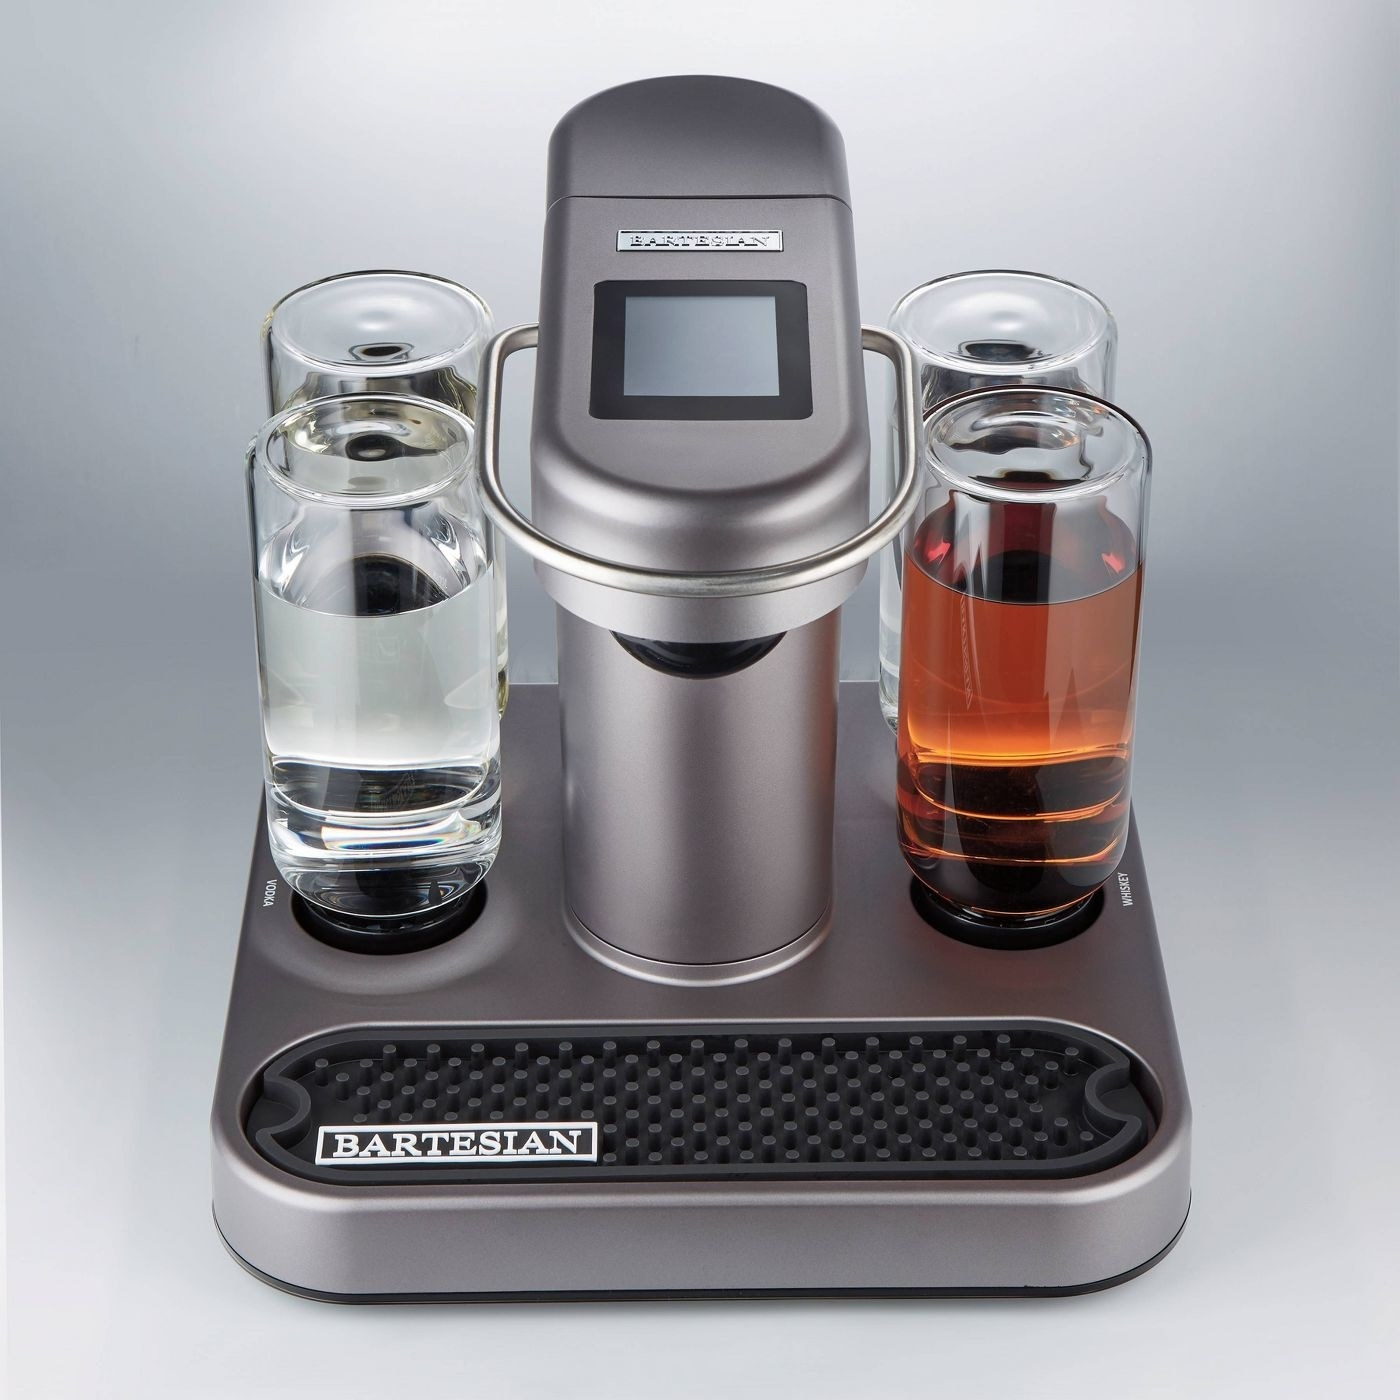 The cocktail dispensing machine